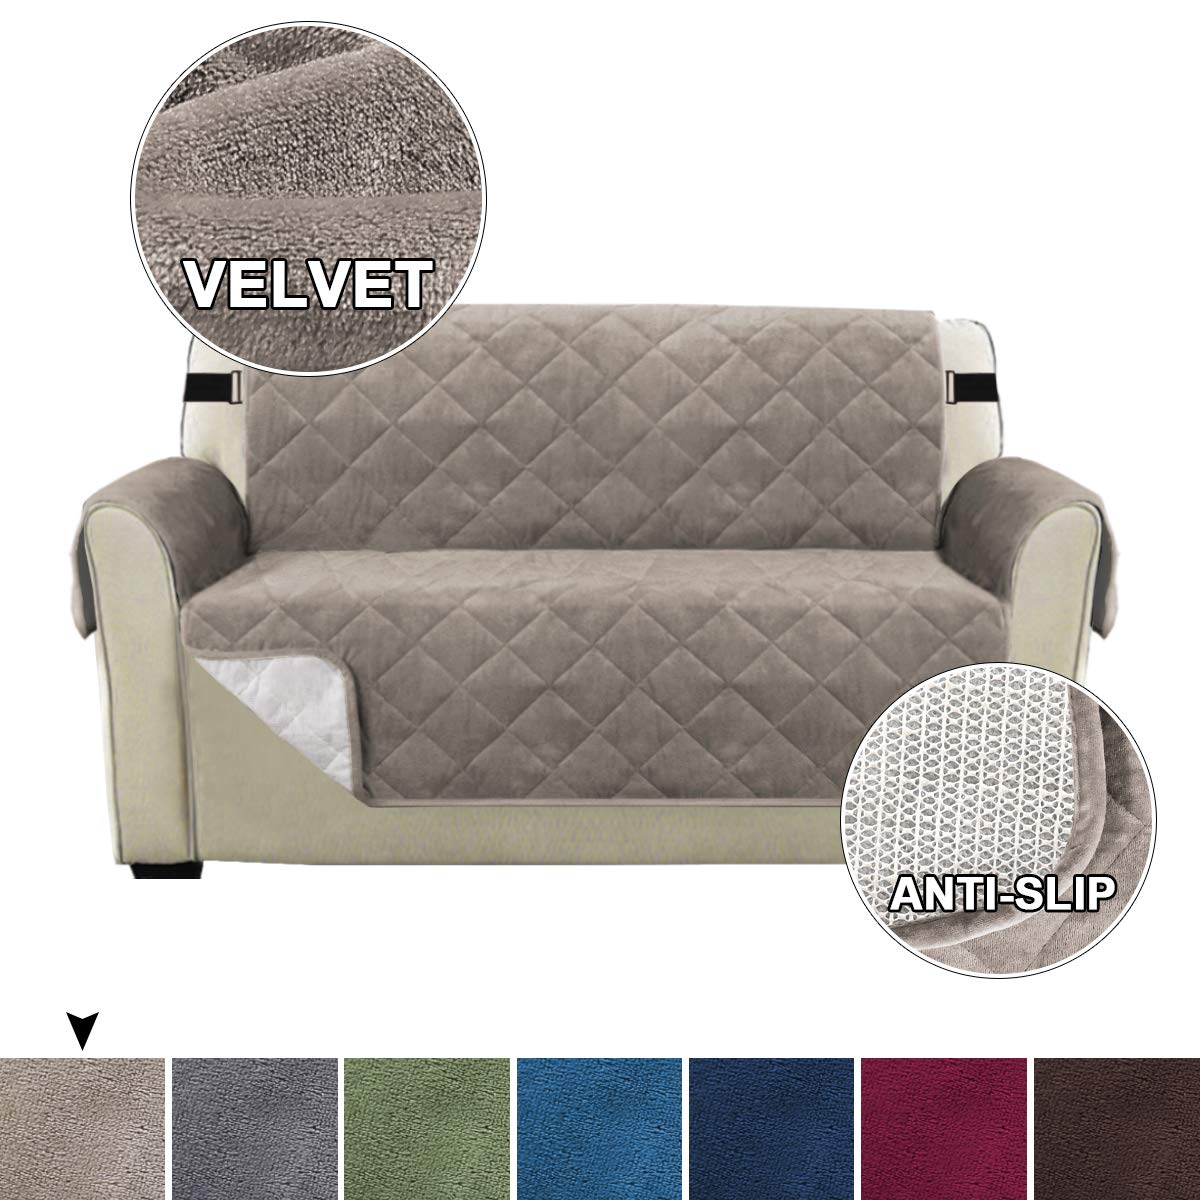 Turquoize Velvet Slip Resistant Loveseat Covers Couch Covers for Dogs Quilted Furniture Protector, Pet Cover for Loveseat, Loveseat Cover for Dogs Couch Slipcover, Machine Washable (Loveseat, Taupe)